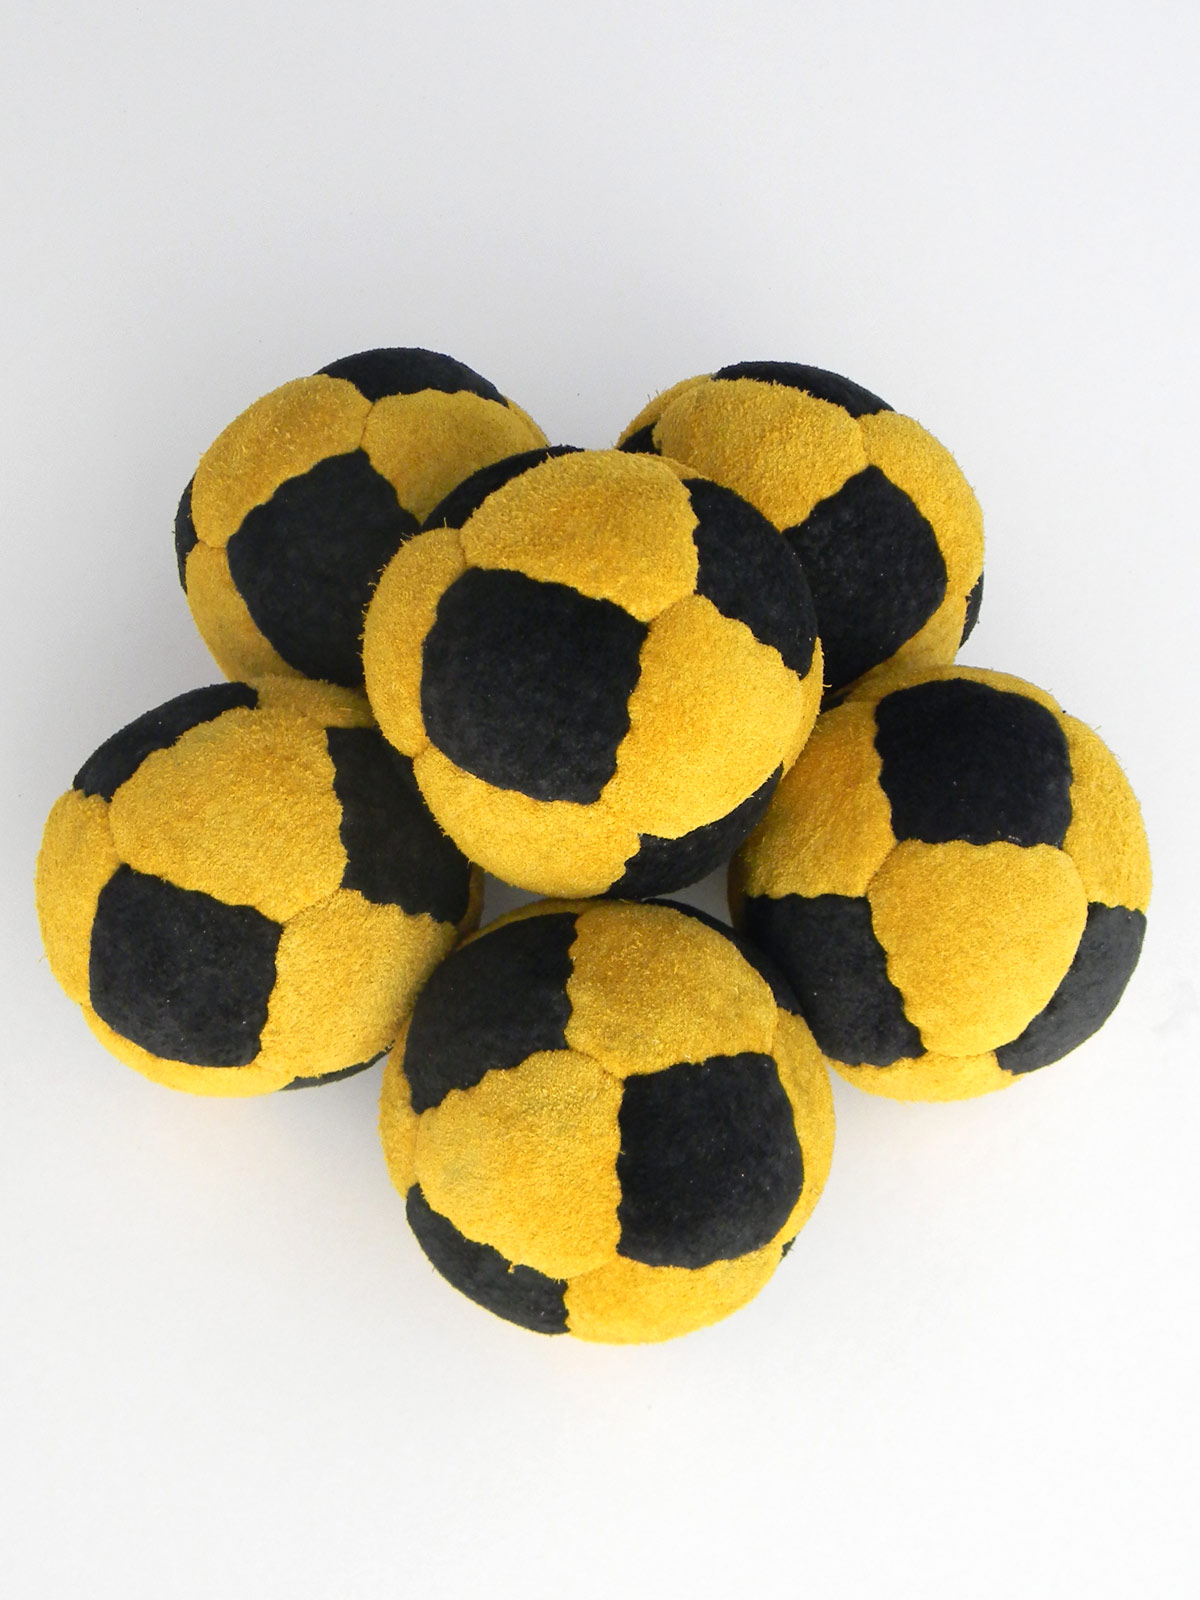 14 Panel Suede Juggling ... - Leather Juggling Balls, Suede Fourteen Panel Beanbags